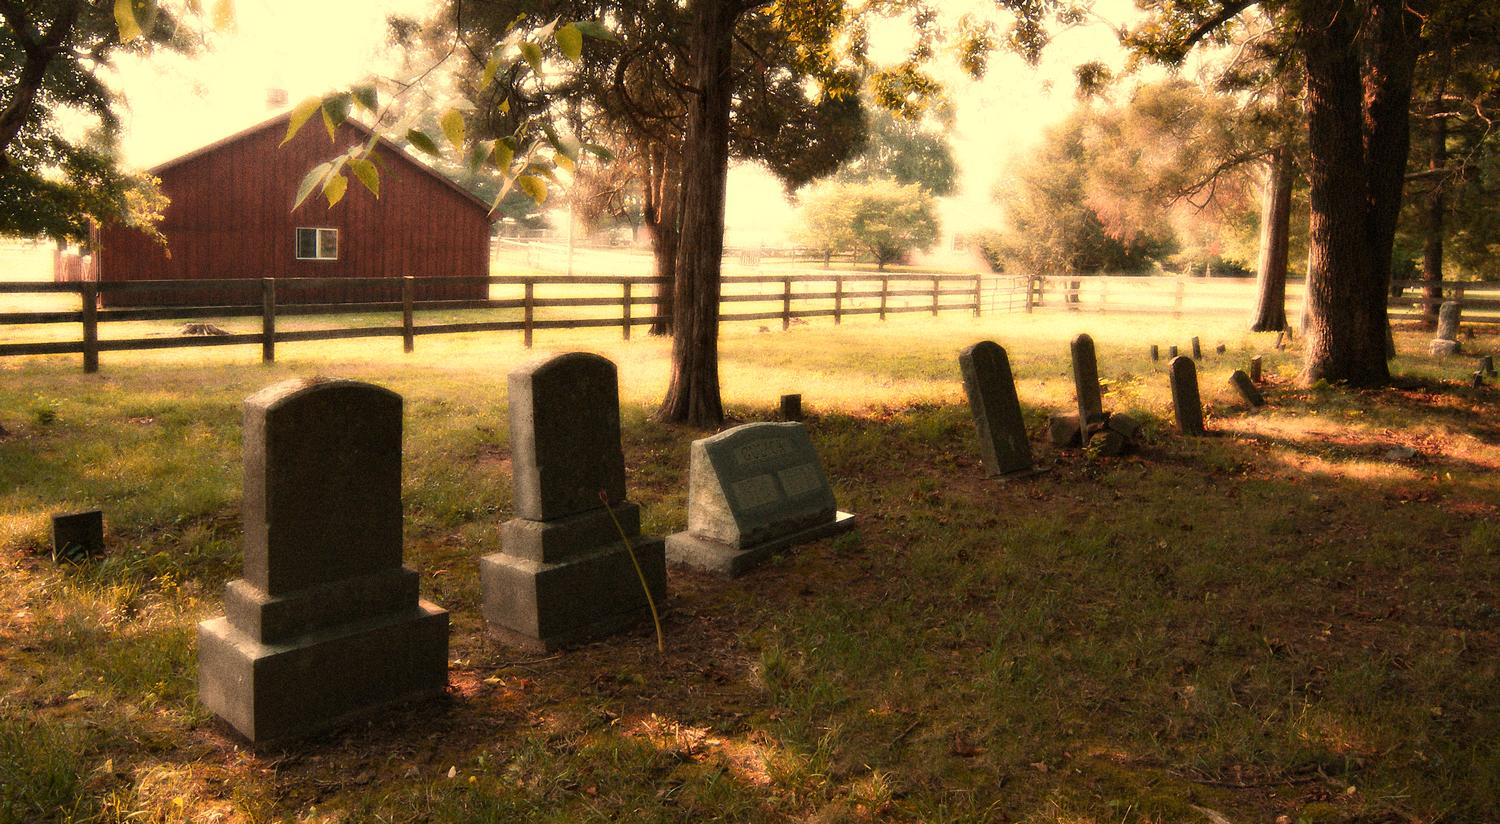 - Cemetery on our road - Kodak Easyshare P880 - - art  - photography - by Tony Karp